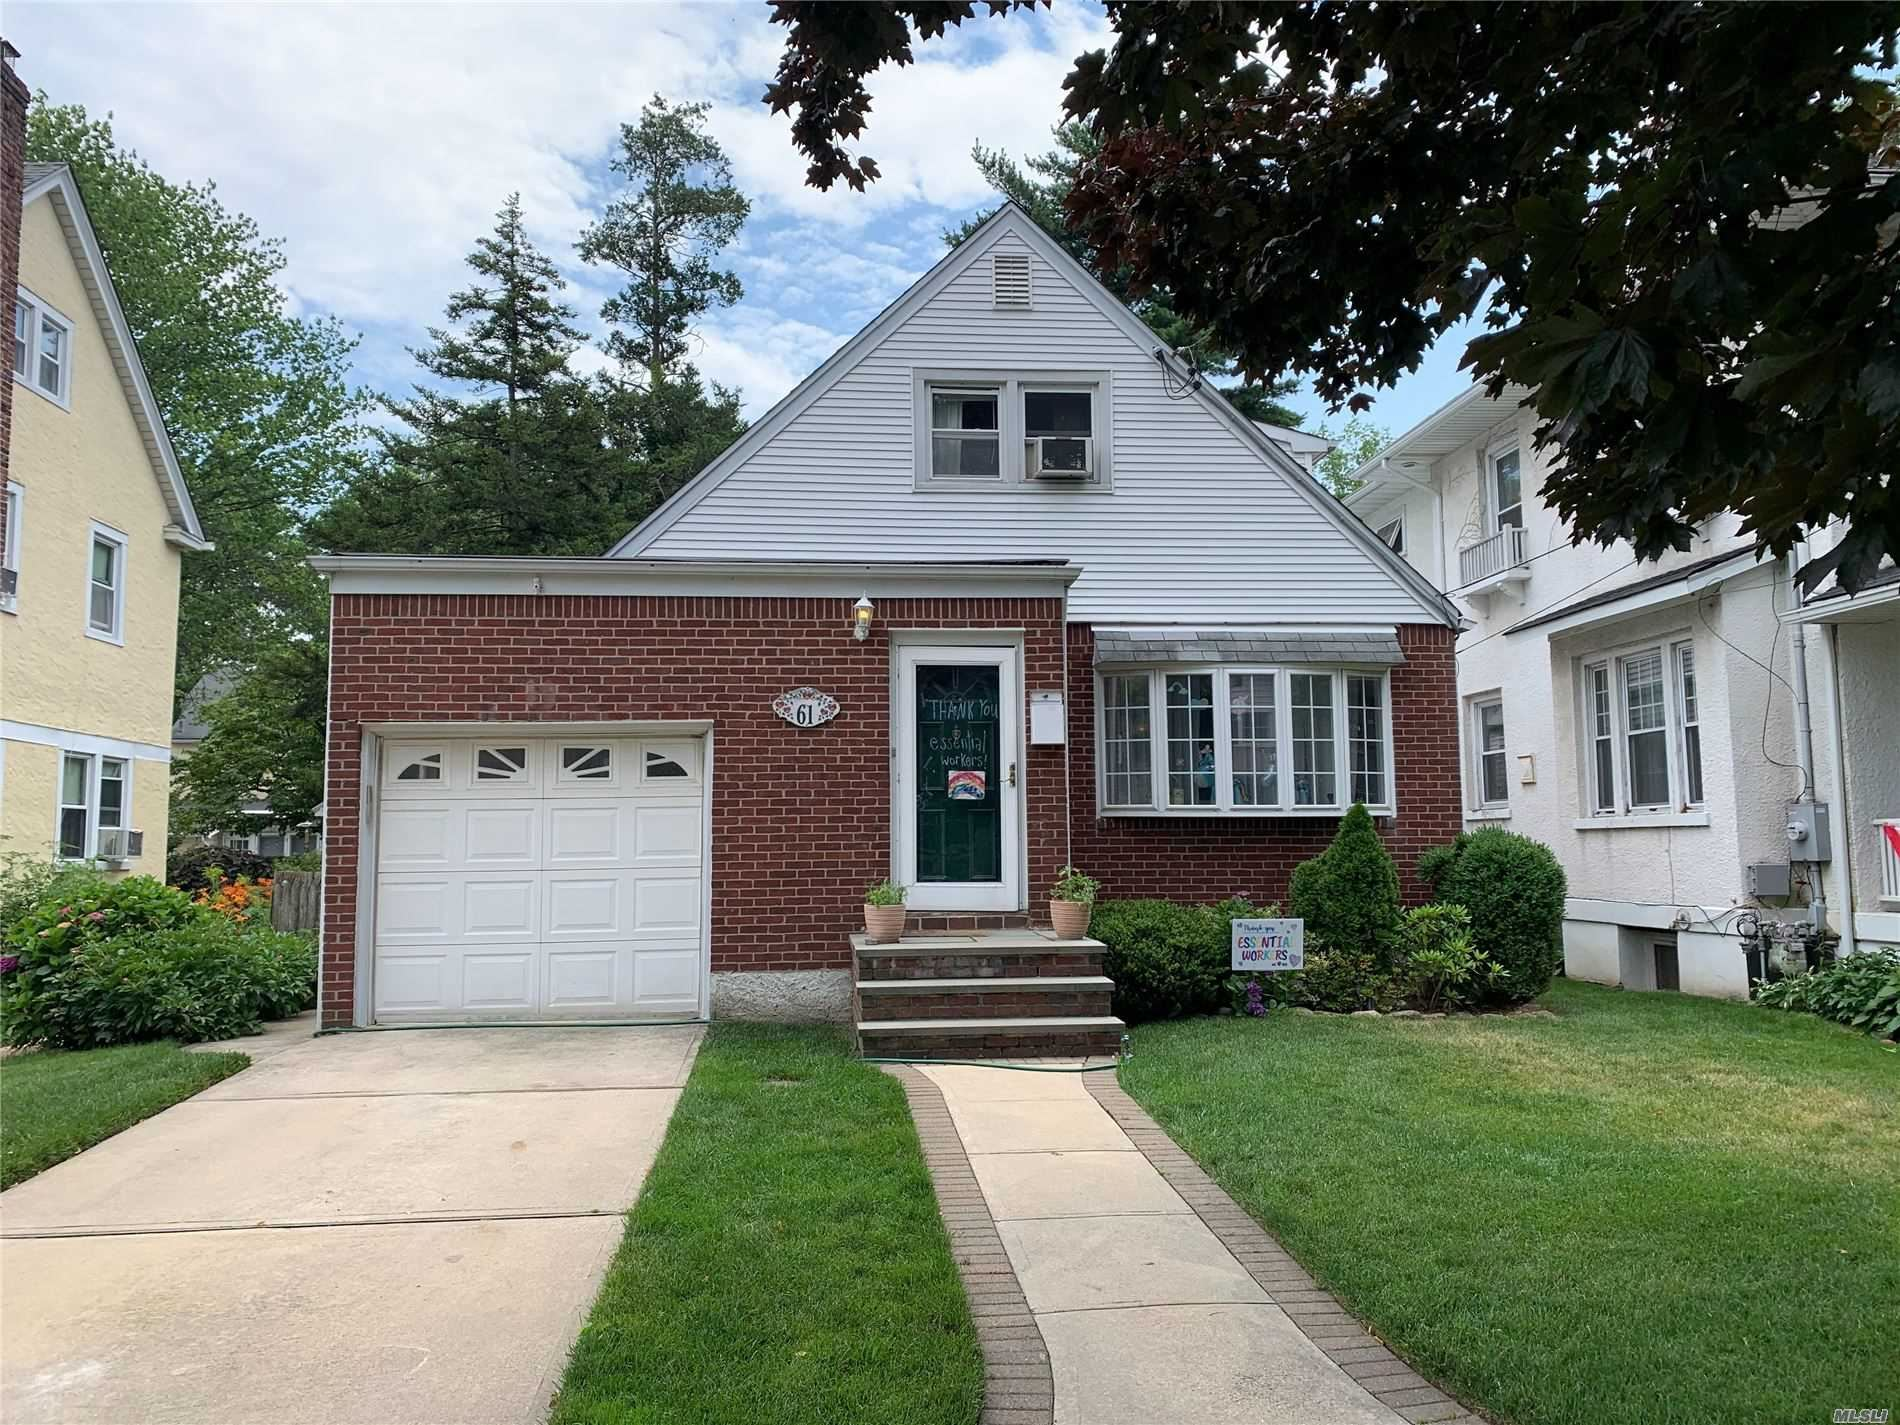 61 Beech St, Floral Park, NY 11001 - MLS#: 3230922